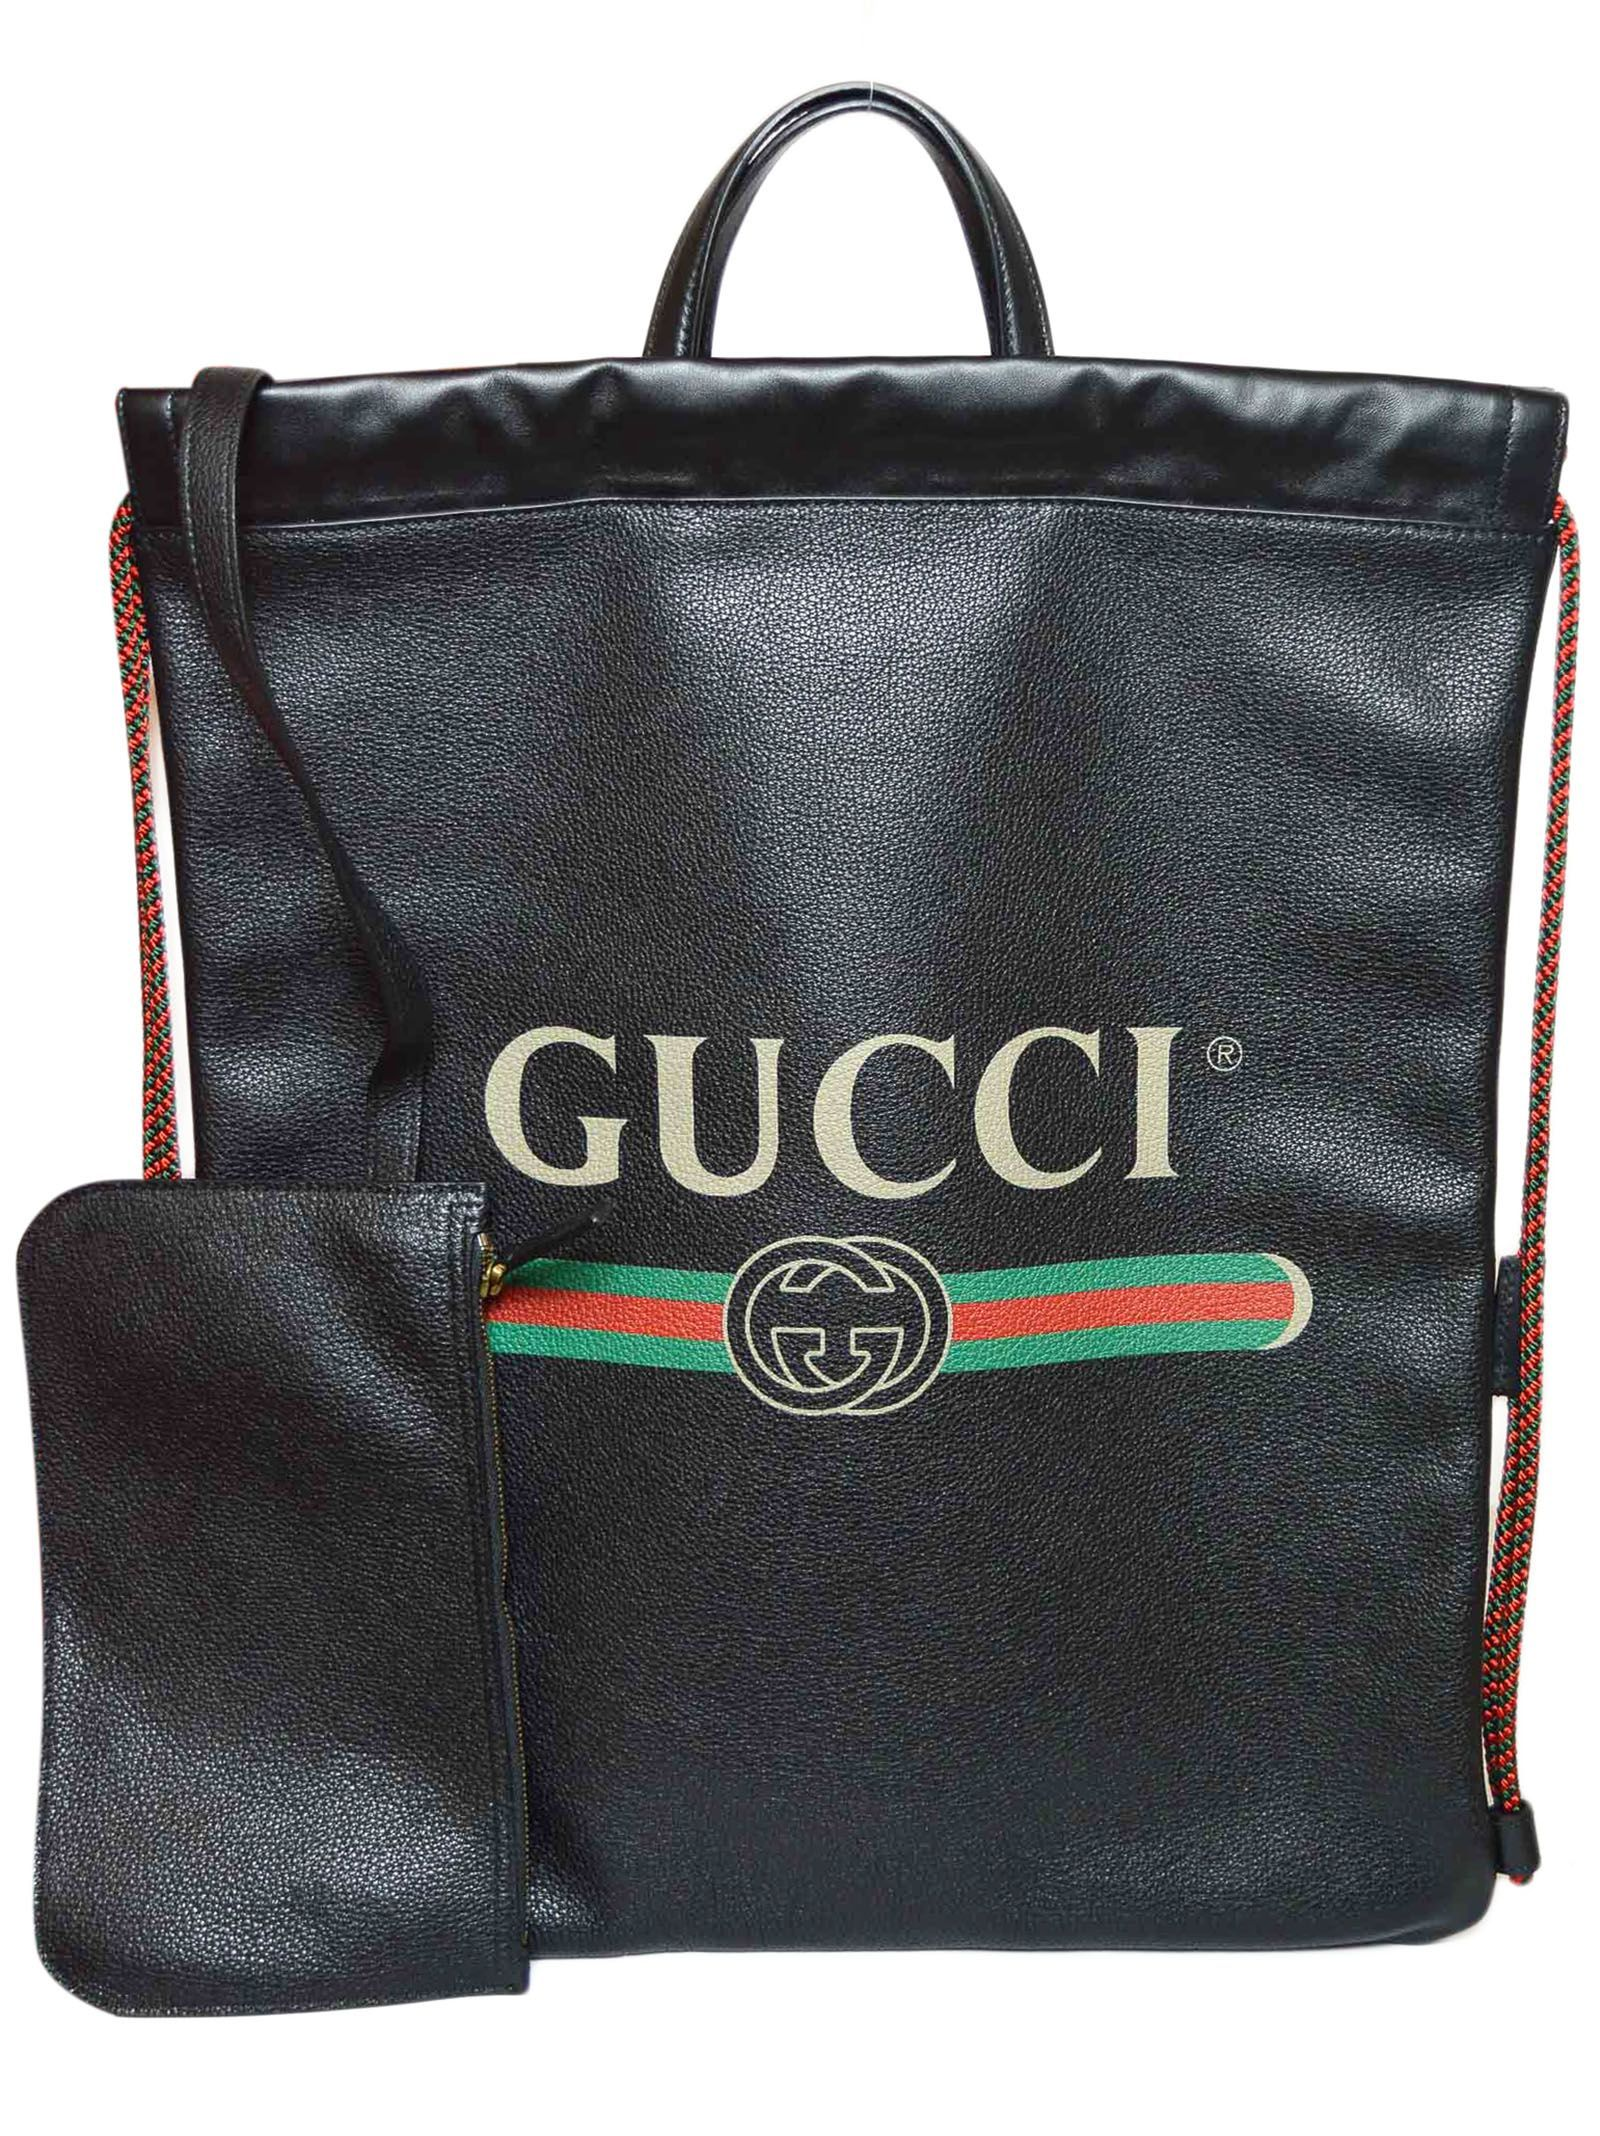 ac70b4756a6a GUCCI LOGO PRINT DRAWSTRING BACKPACK.  gucci  bags  leather  backpacks